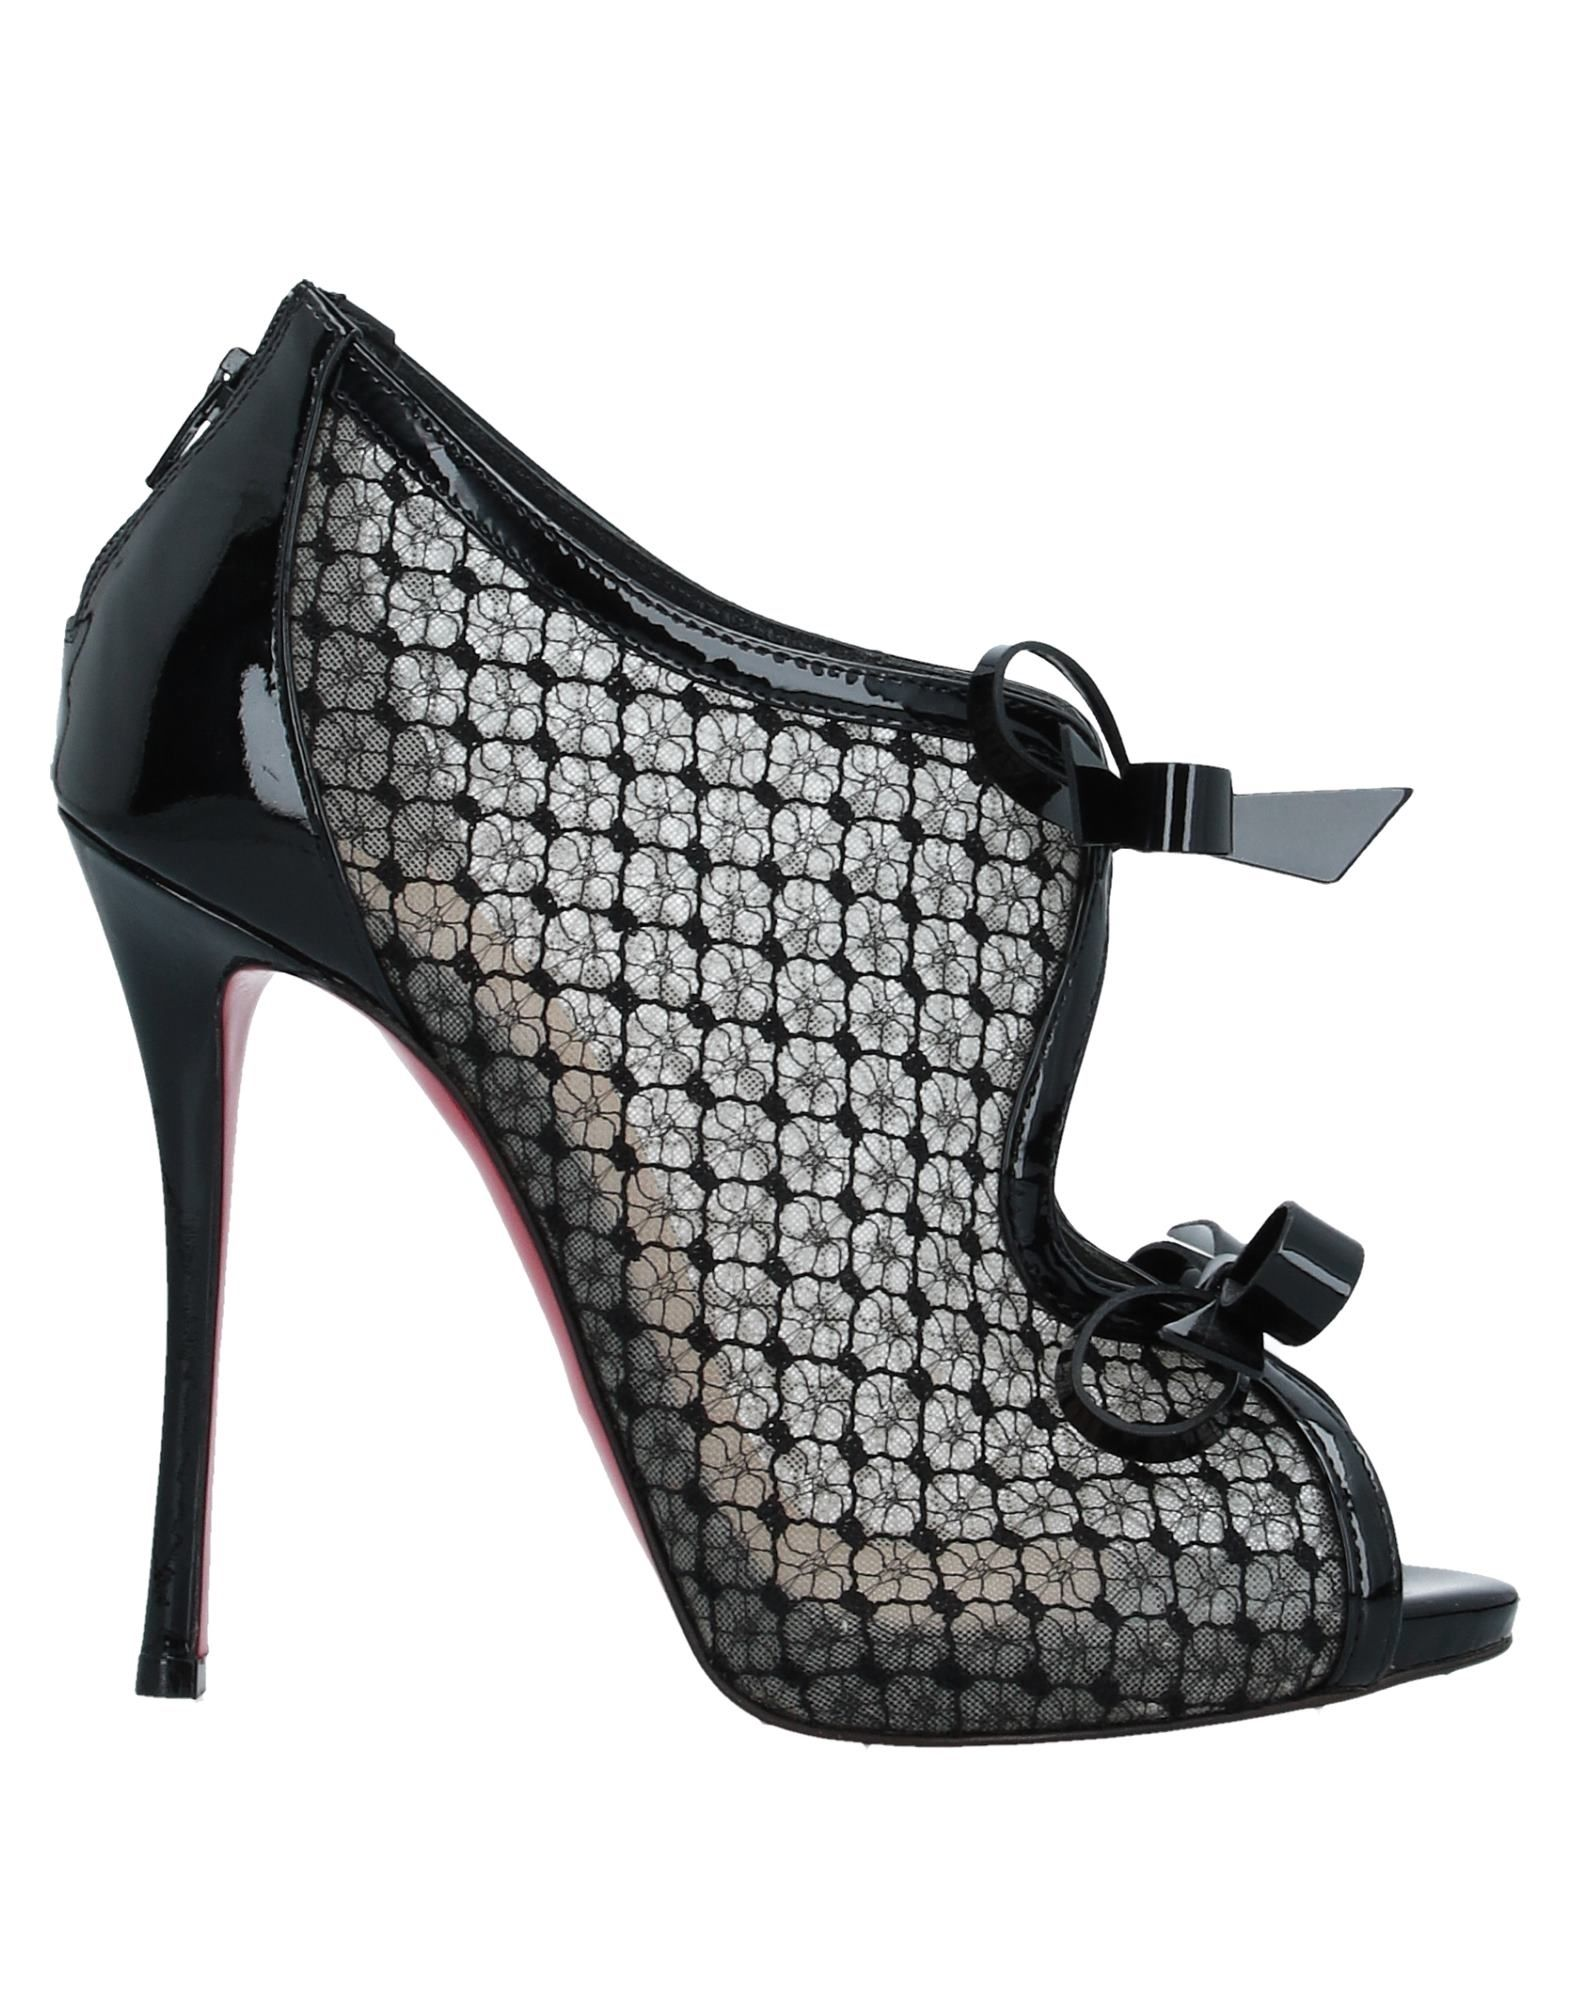 CHRISTIAN LOUBOUTIN Booties. leather, lace, varnished effect, bow-detailed, solid color, zipper closure, round toeline, spike heel, covered heel, leather lining, leather sole, contains non-textile parts of animal origin, small sized. Textile fibers, Soft Leather